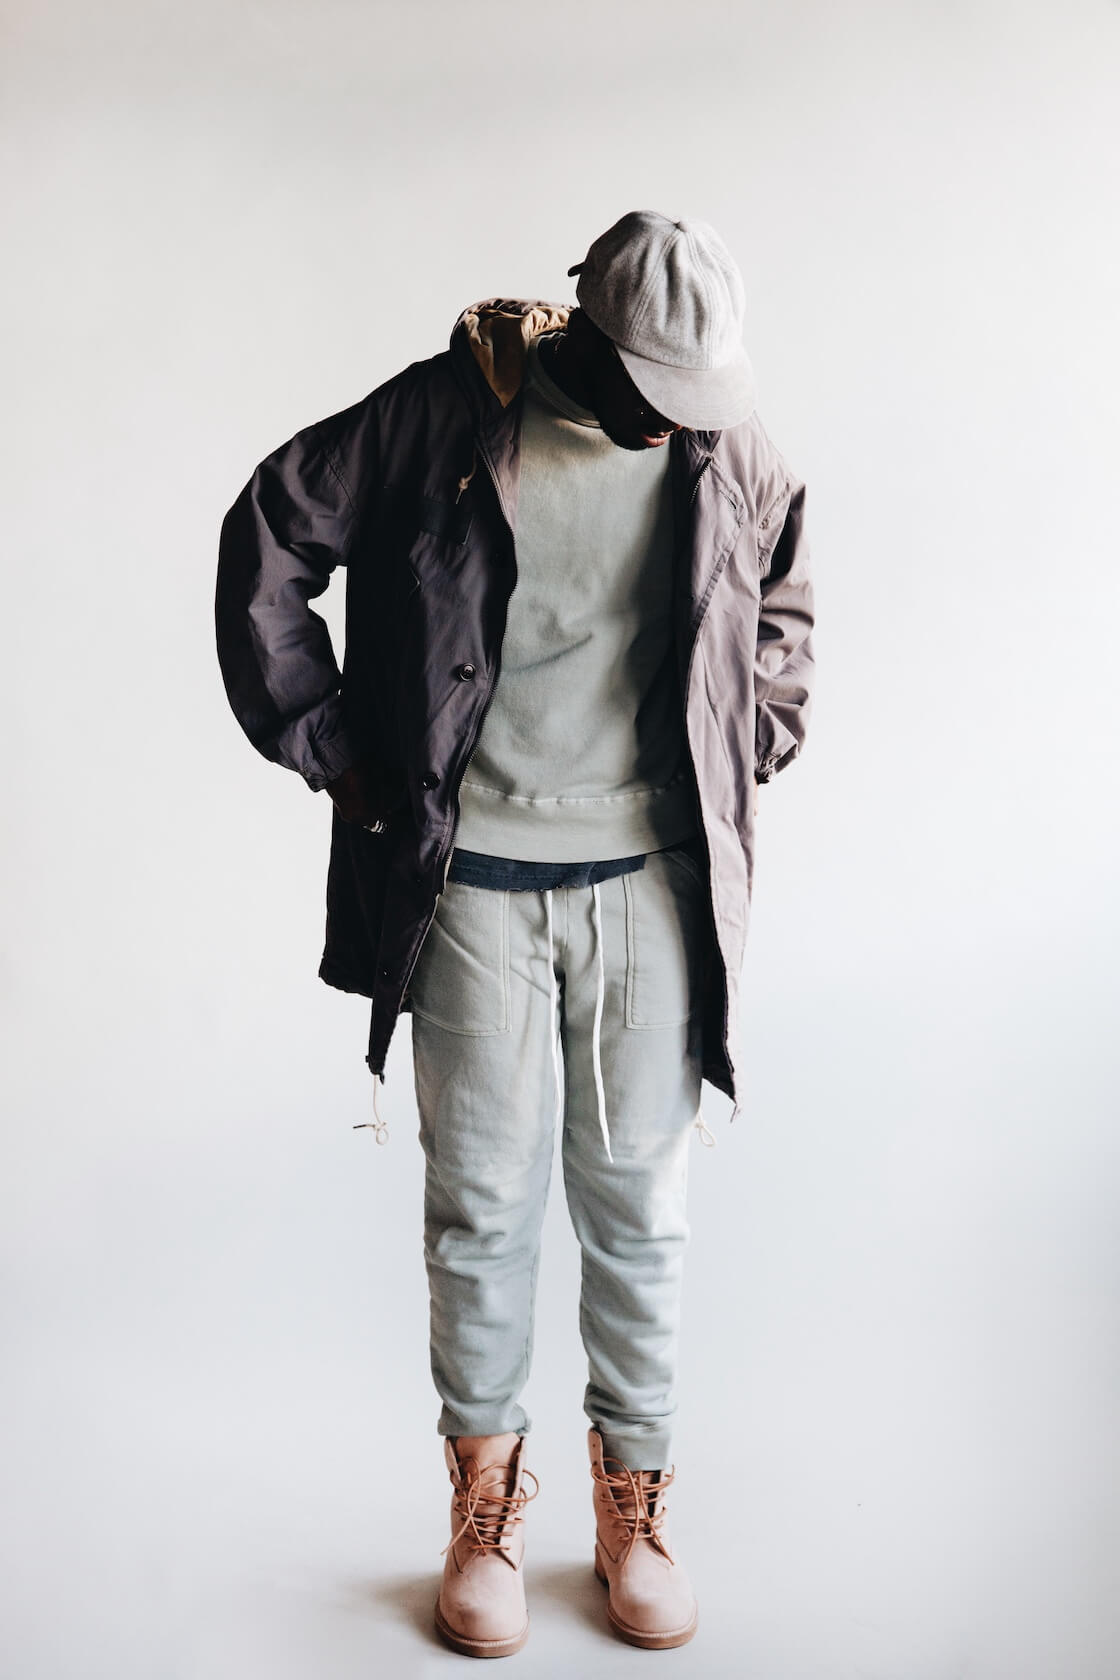 hender scheme wool cap, visvim patterson overcoat, velva sheen freedom sweatshirt, velva sheen army gym sweatpants and hender scheme mip-14 shoes on body